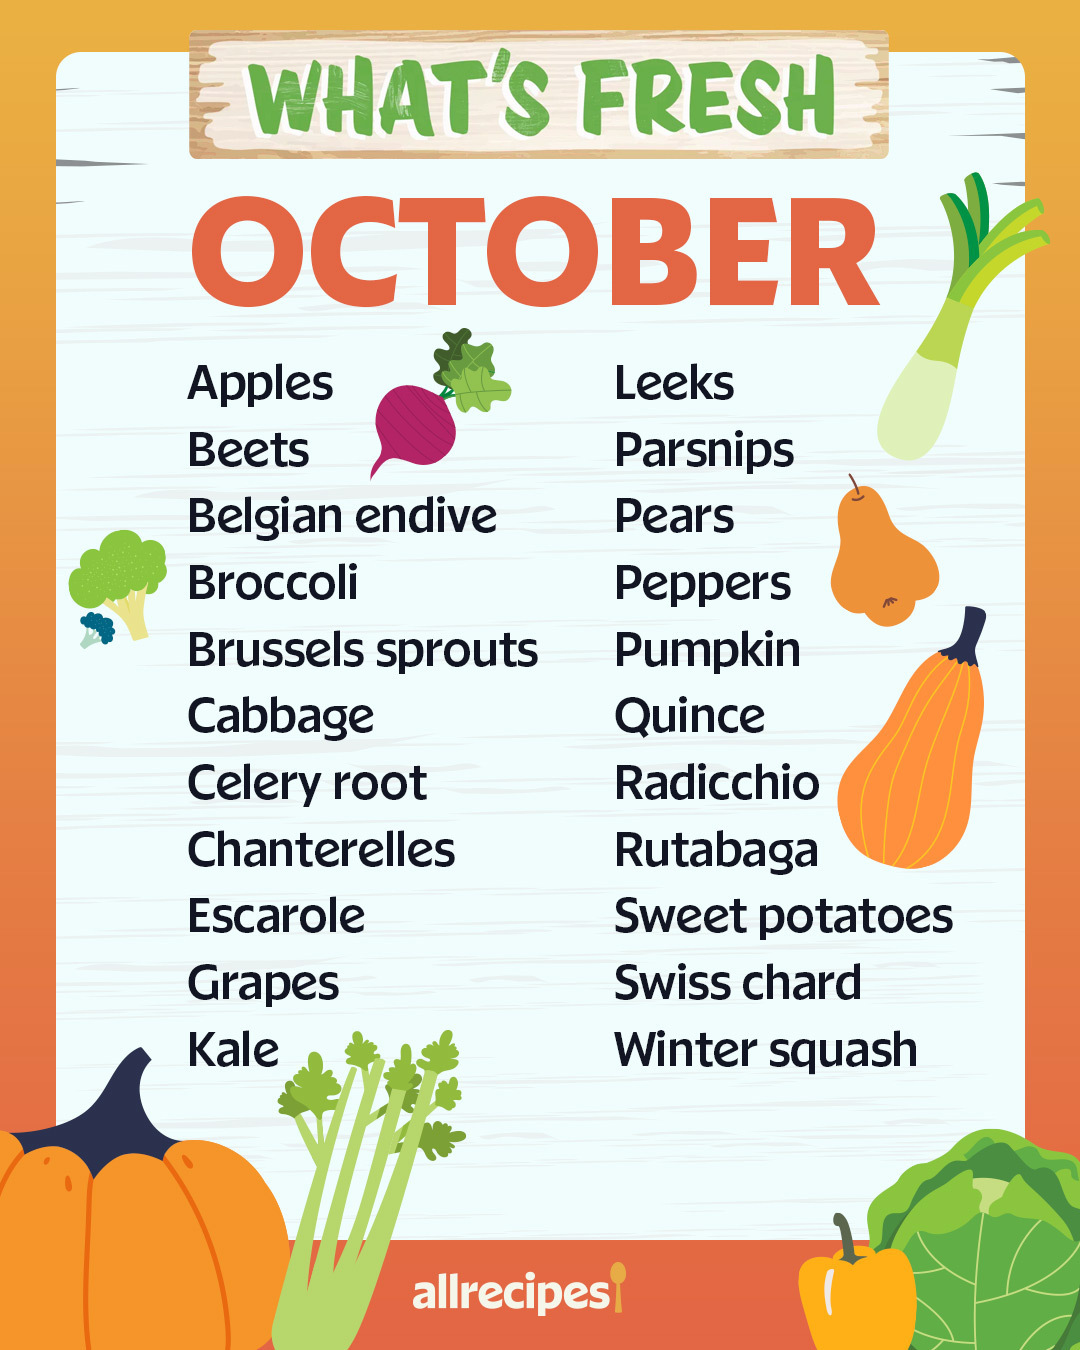 What's Fresh October Produce List